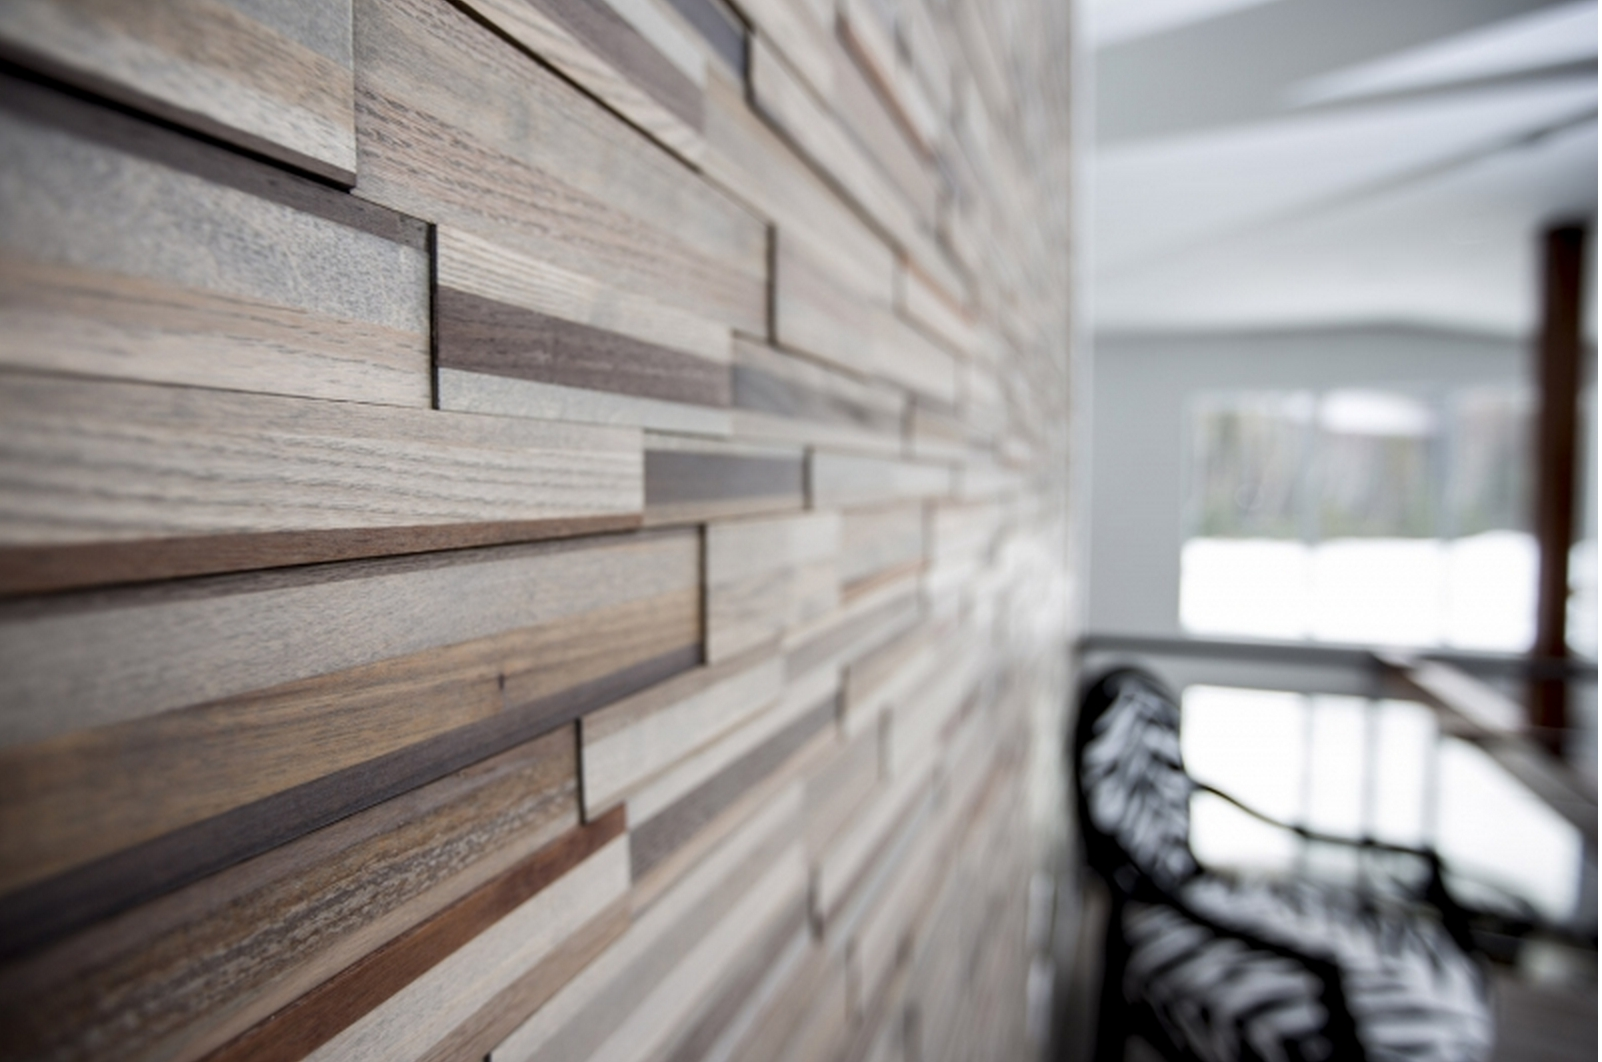 Add A Warm, Contemporary Look To Any Room With Easy Diy Multi With 2017 Wood Paneling Wall Accents (View 2 of 15)